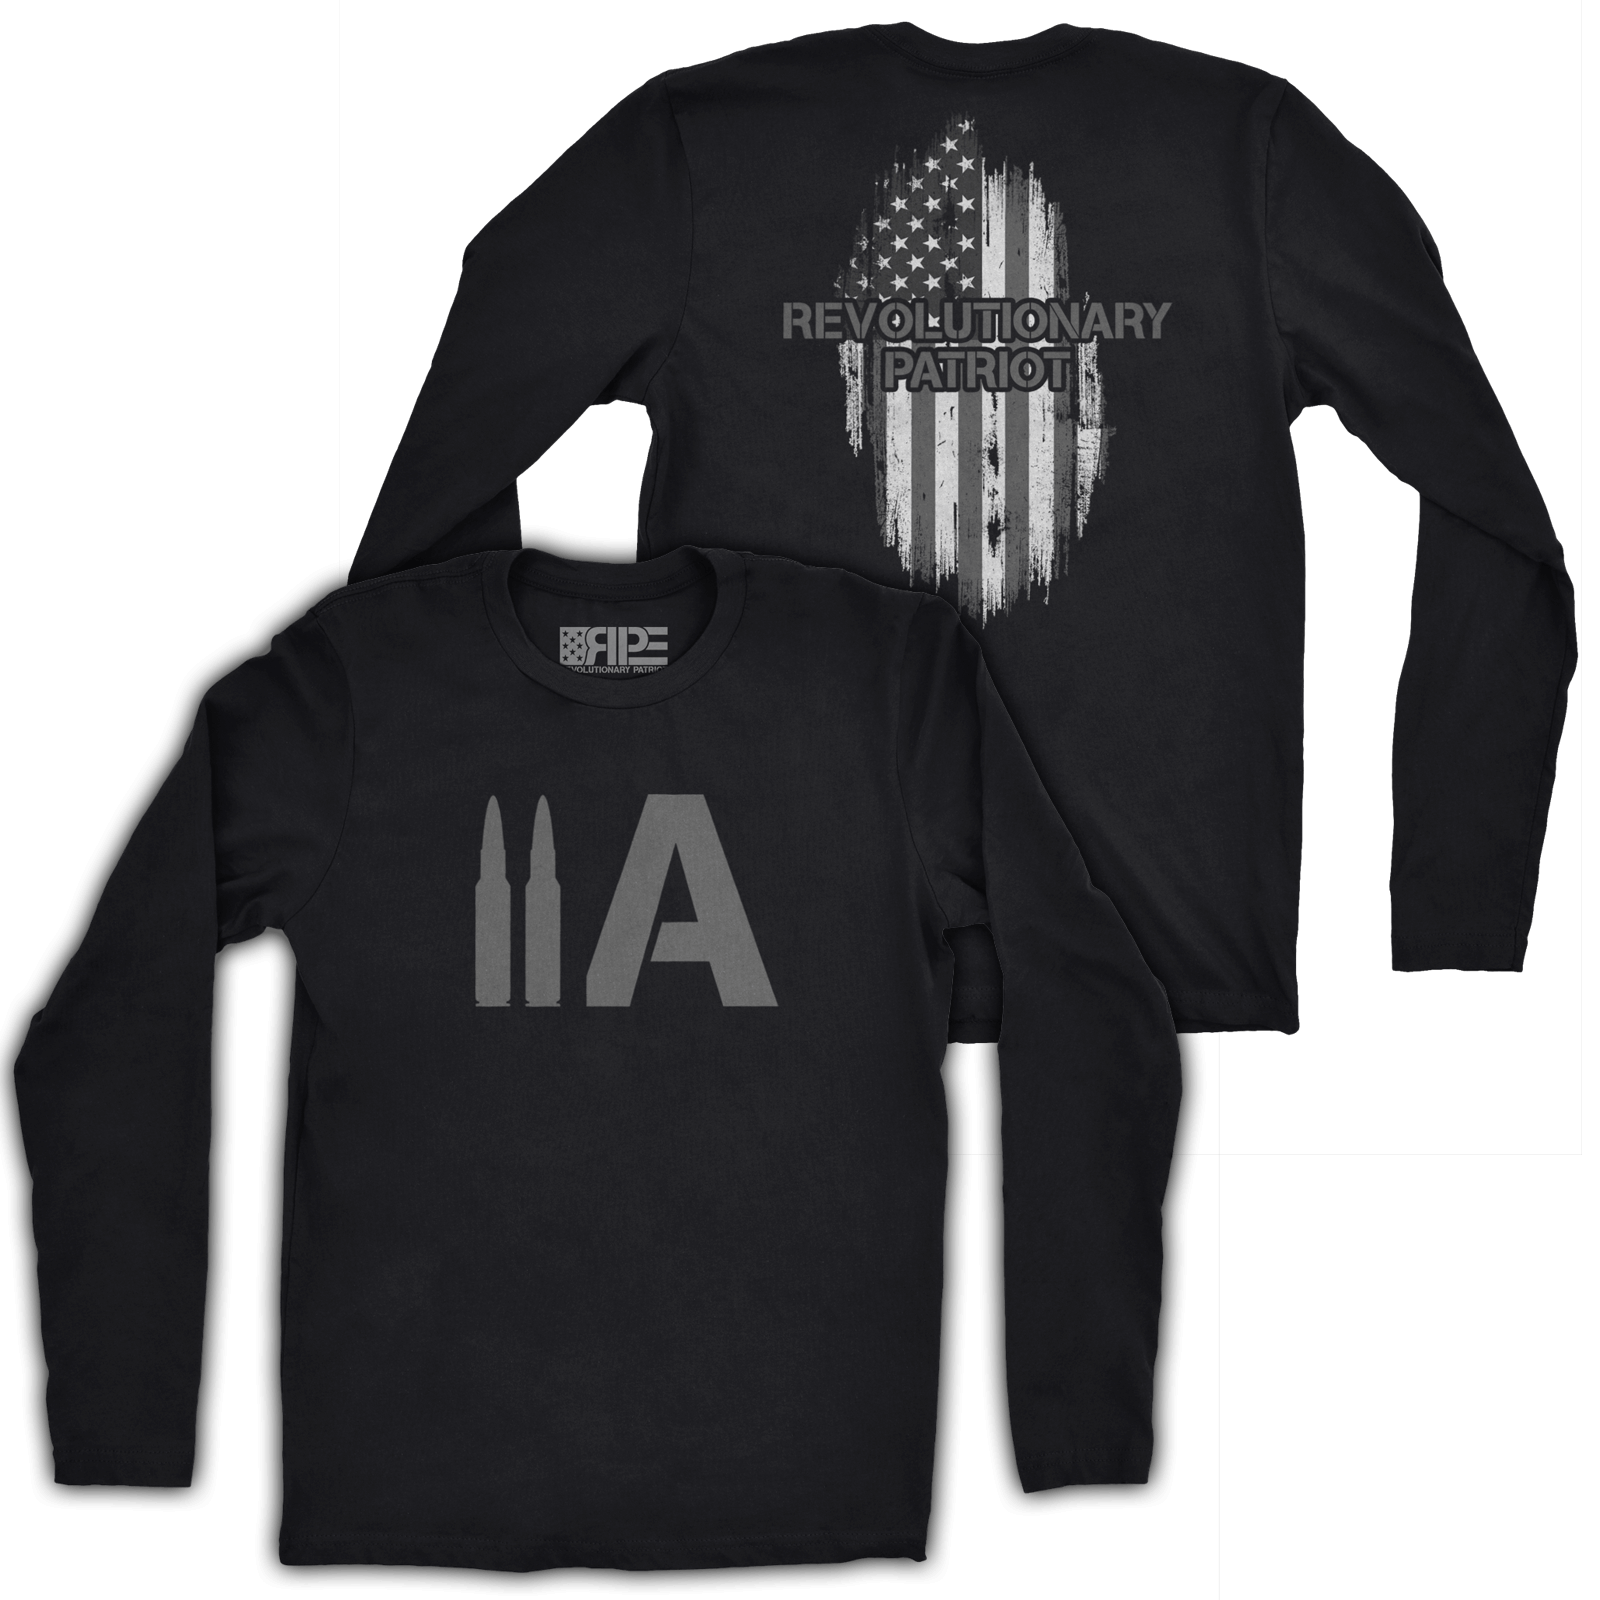 2A Long Sleeve (Black) - Revolutionary Patriot